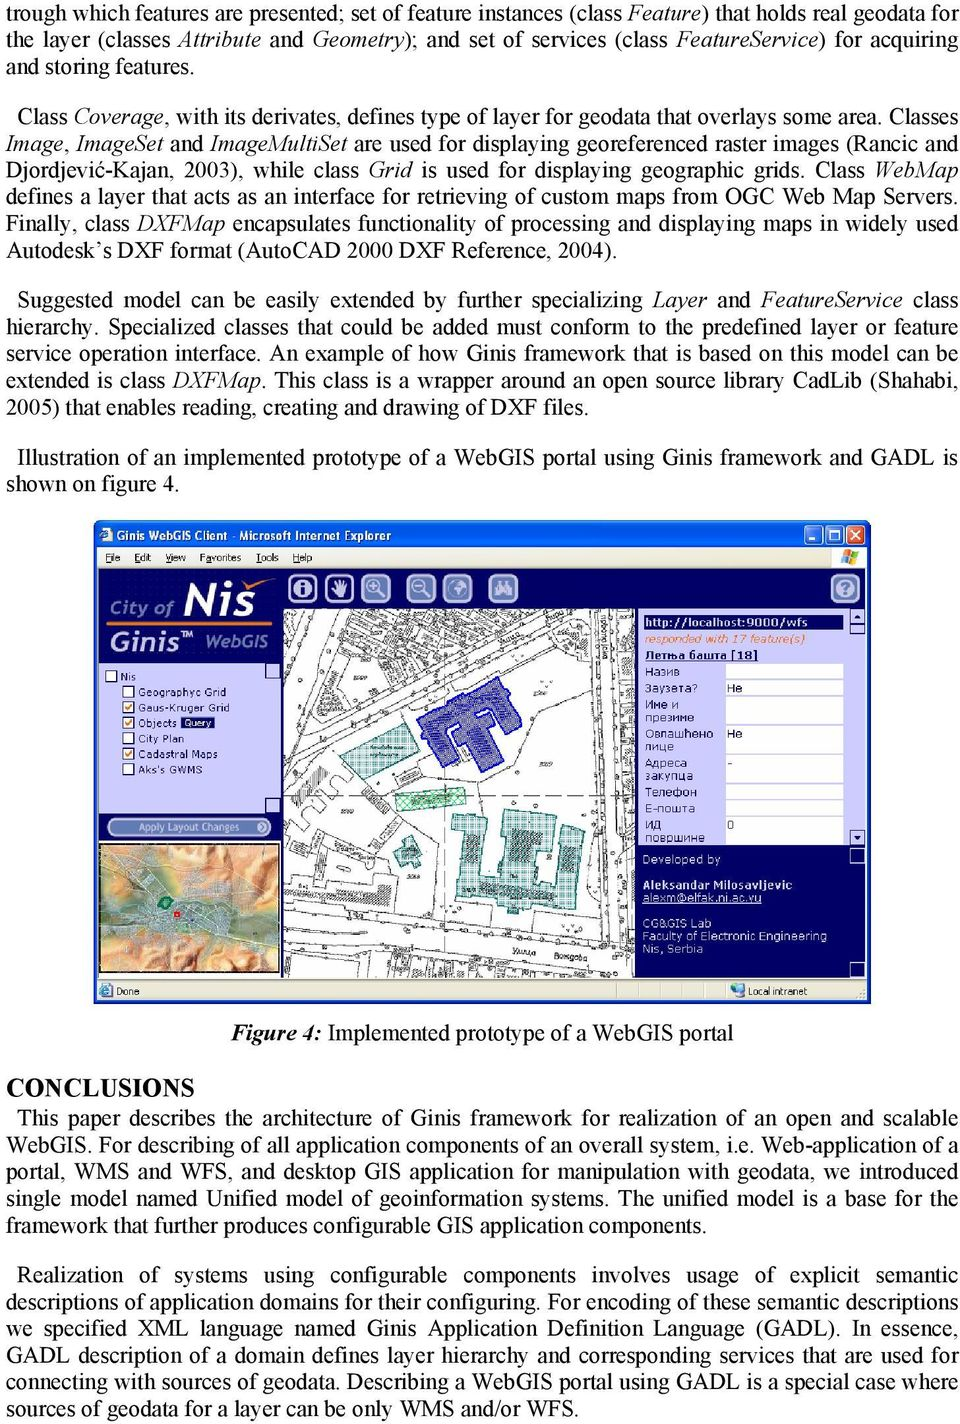 Classes Image, ImageSet and ImageMultiSet are used for displaying georeferenced raster images (Rancic and Djordjević-Kajan, 2003), while class Grid is used for displaying geographic grids.